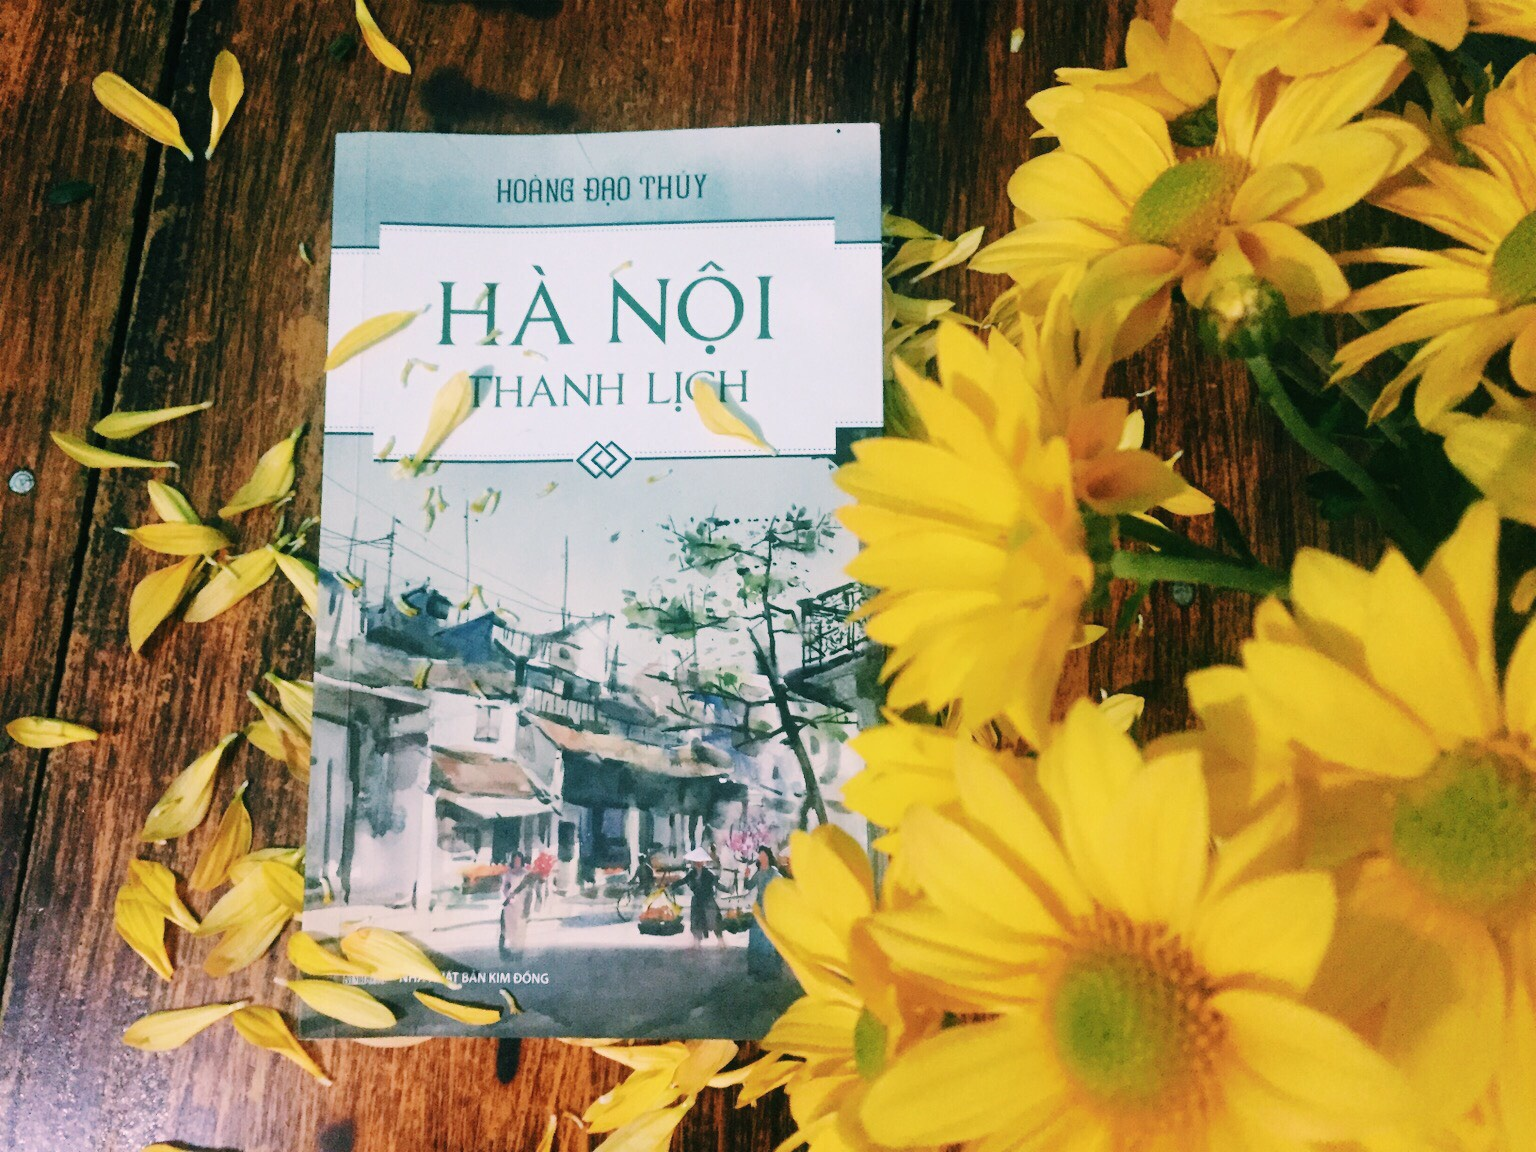 Ha Noi thanh lich anh 1